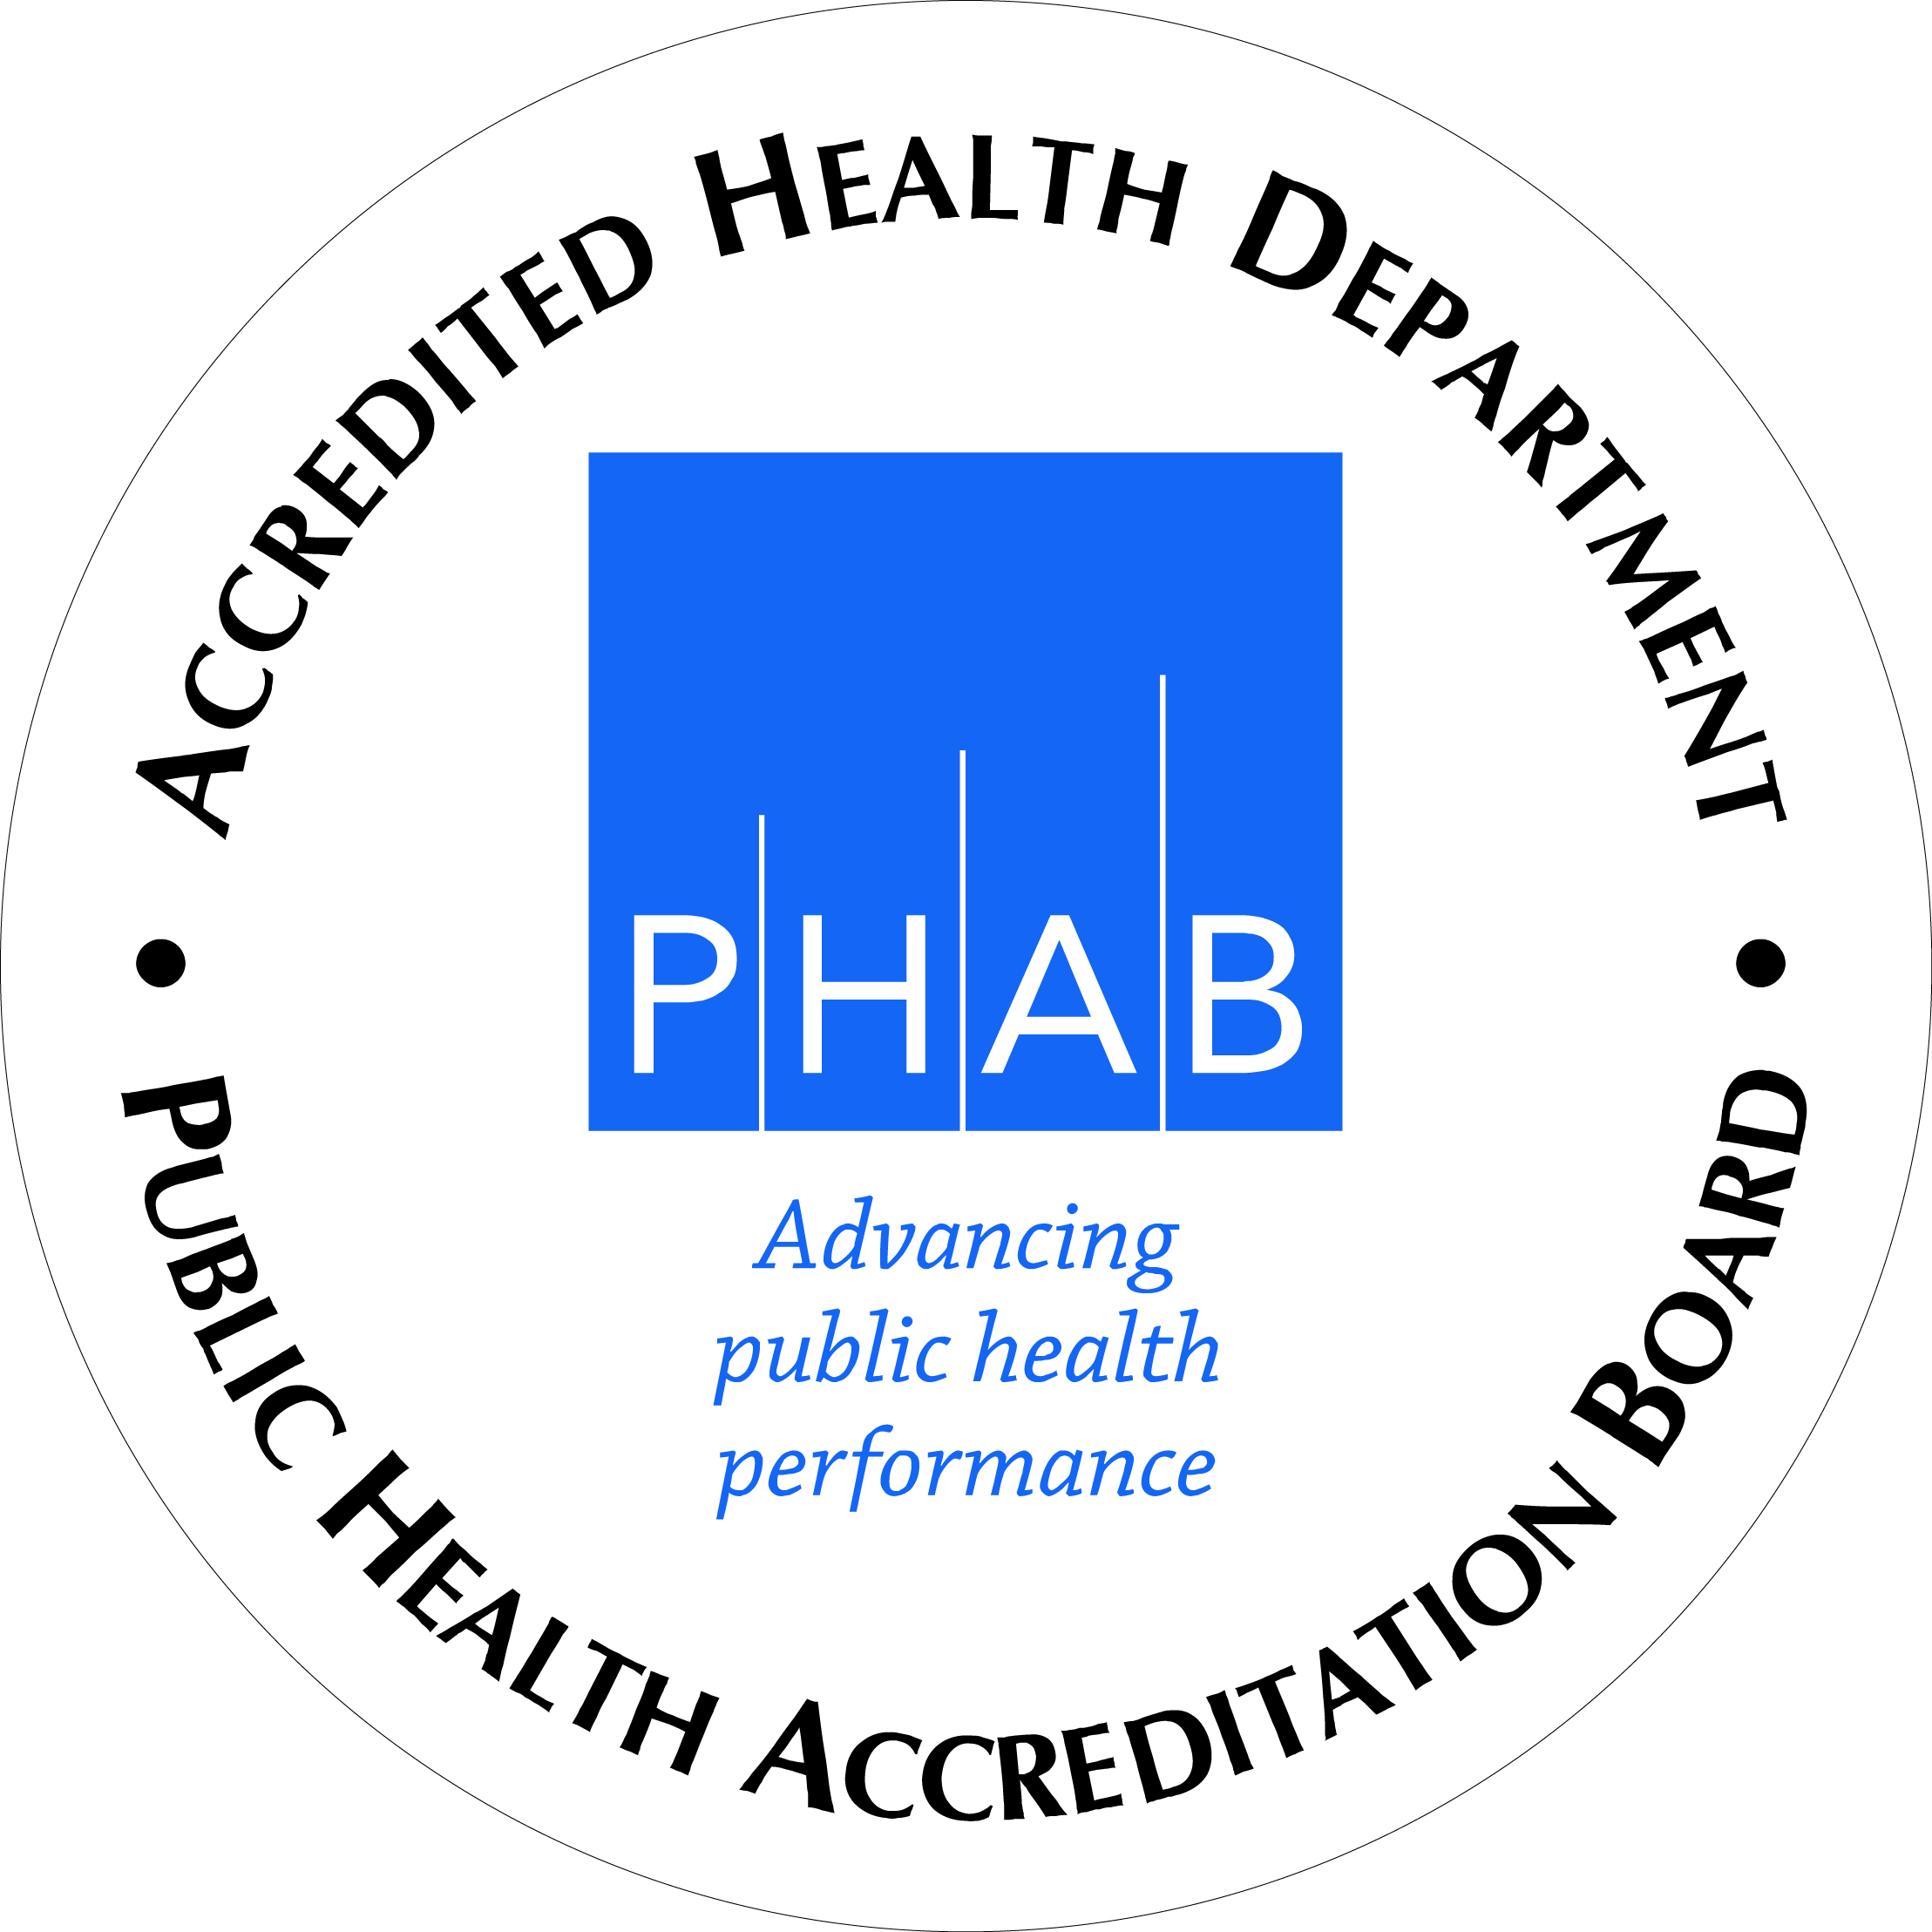 Princeton Health Department Receives National Accreditation